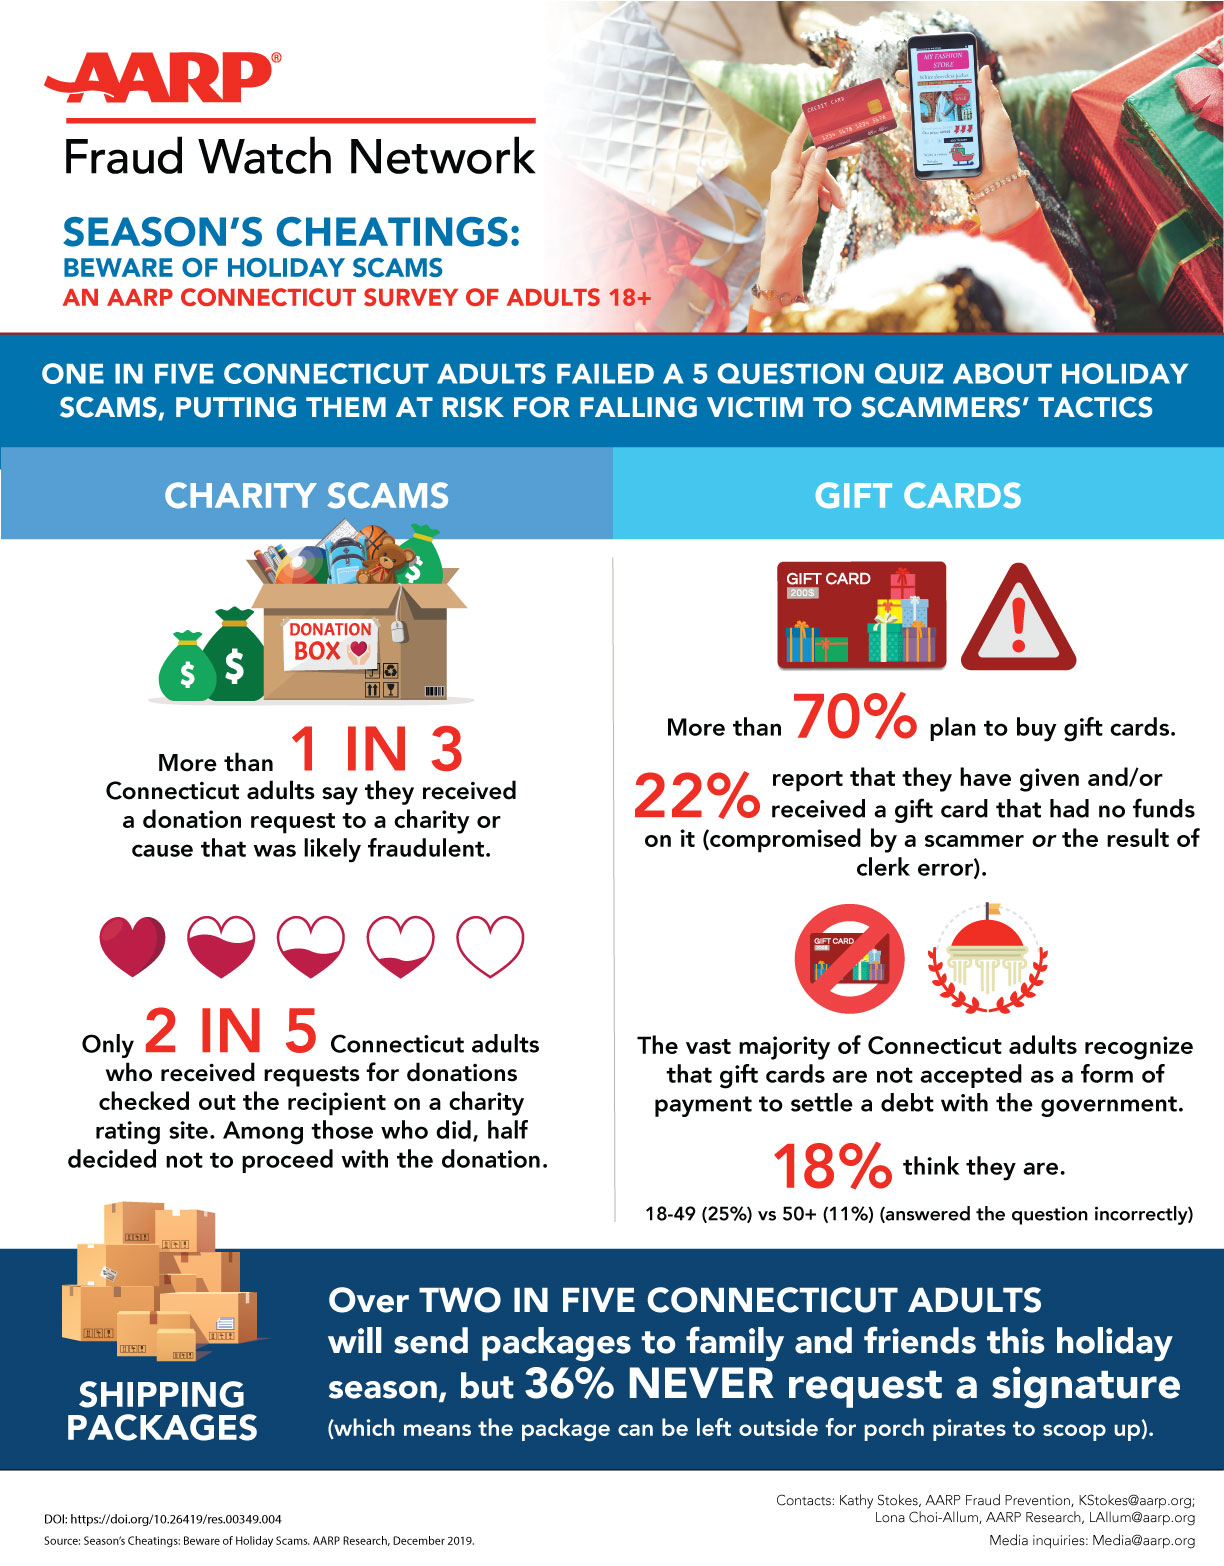 AARP-818-Seasons-Cheating-FULL-INFOGRAPHIC-Holiday-Fraud-CONNECTICUT.jpg